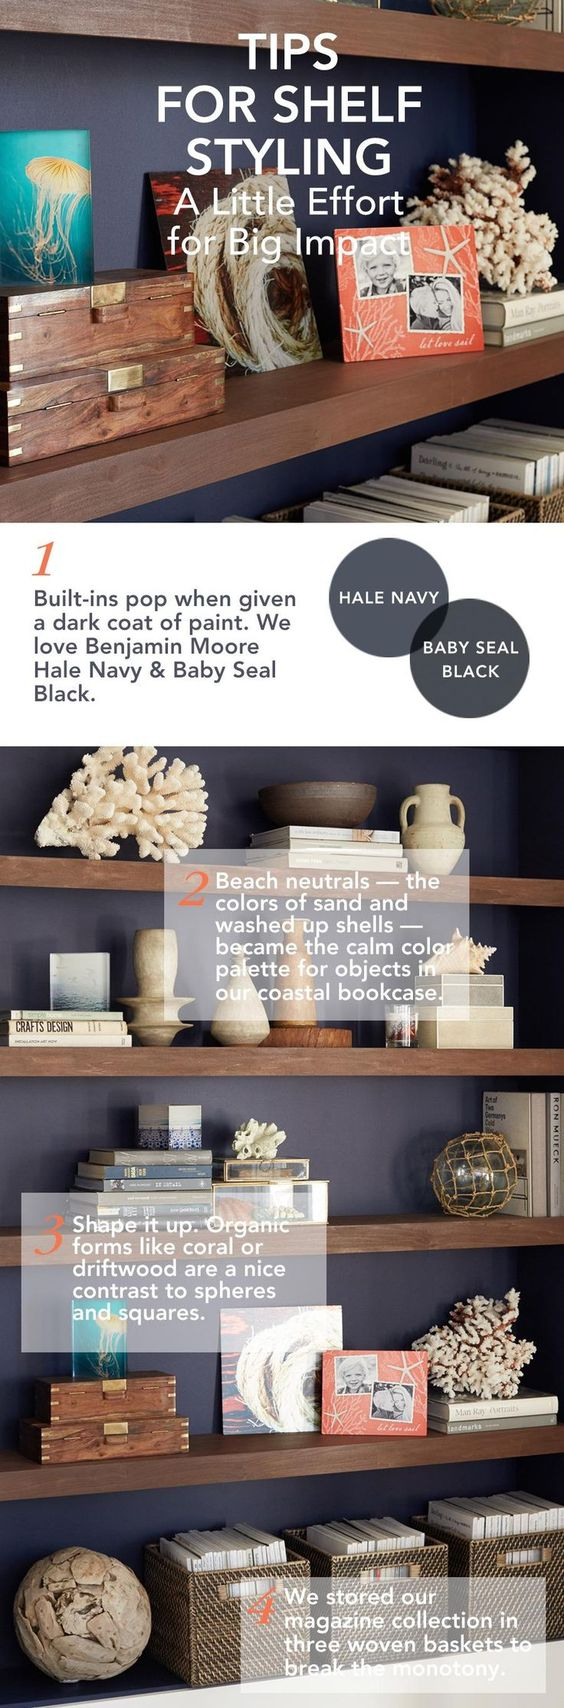 Make a big impact with little effort. Here are 4 tips for styling a shelf in your home.  | Shutterfly